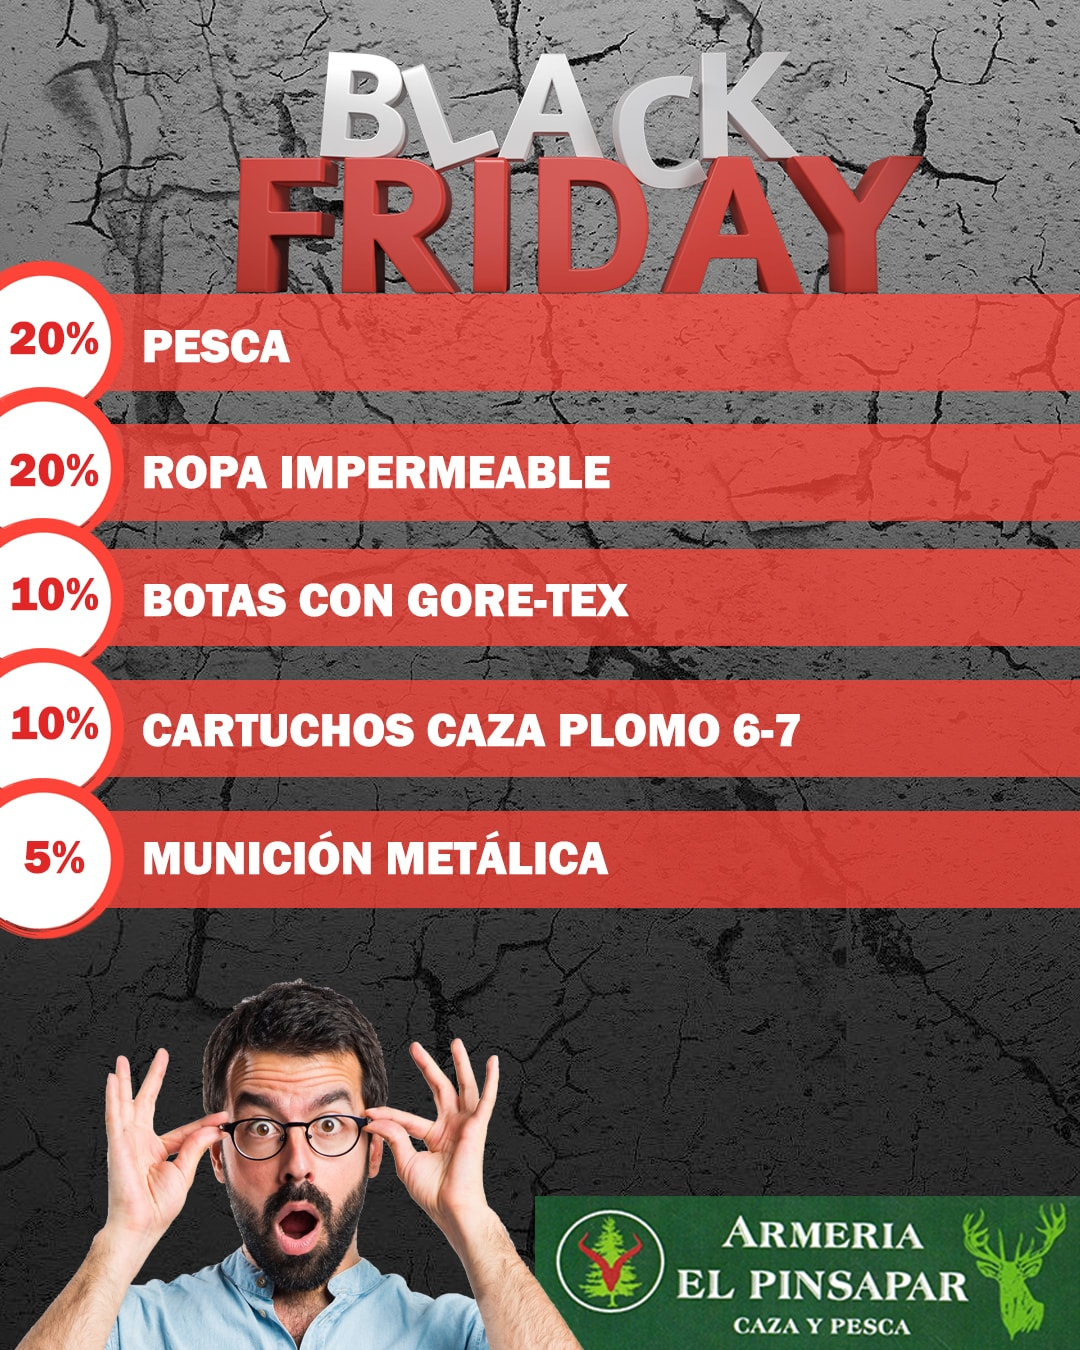 Black Friday Armeria El Pinsapar